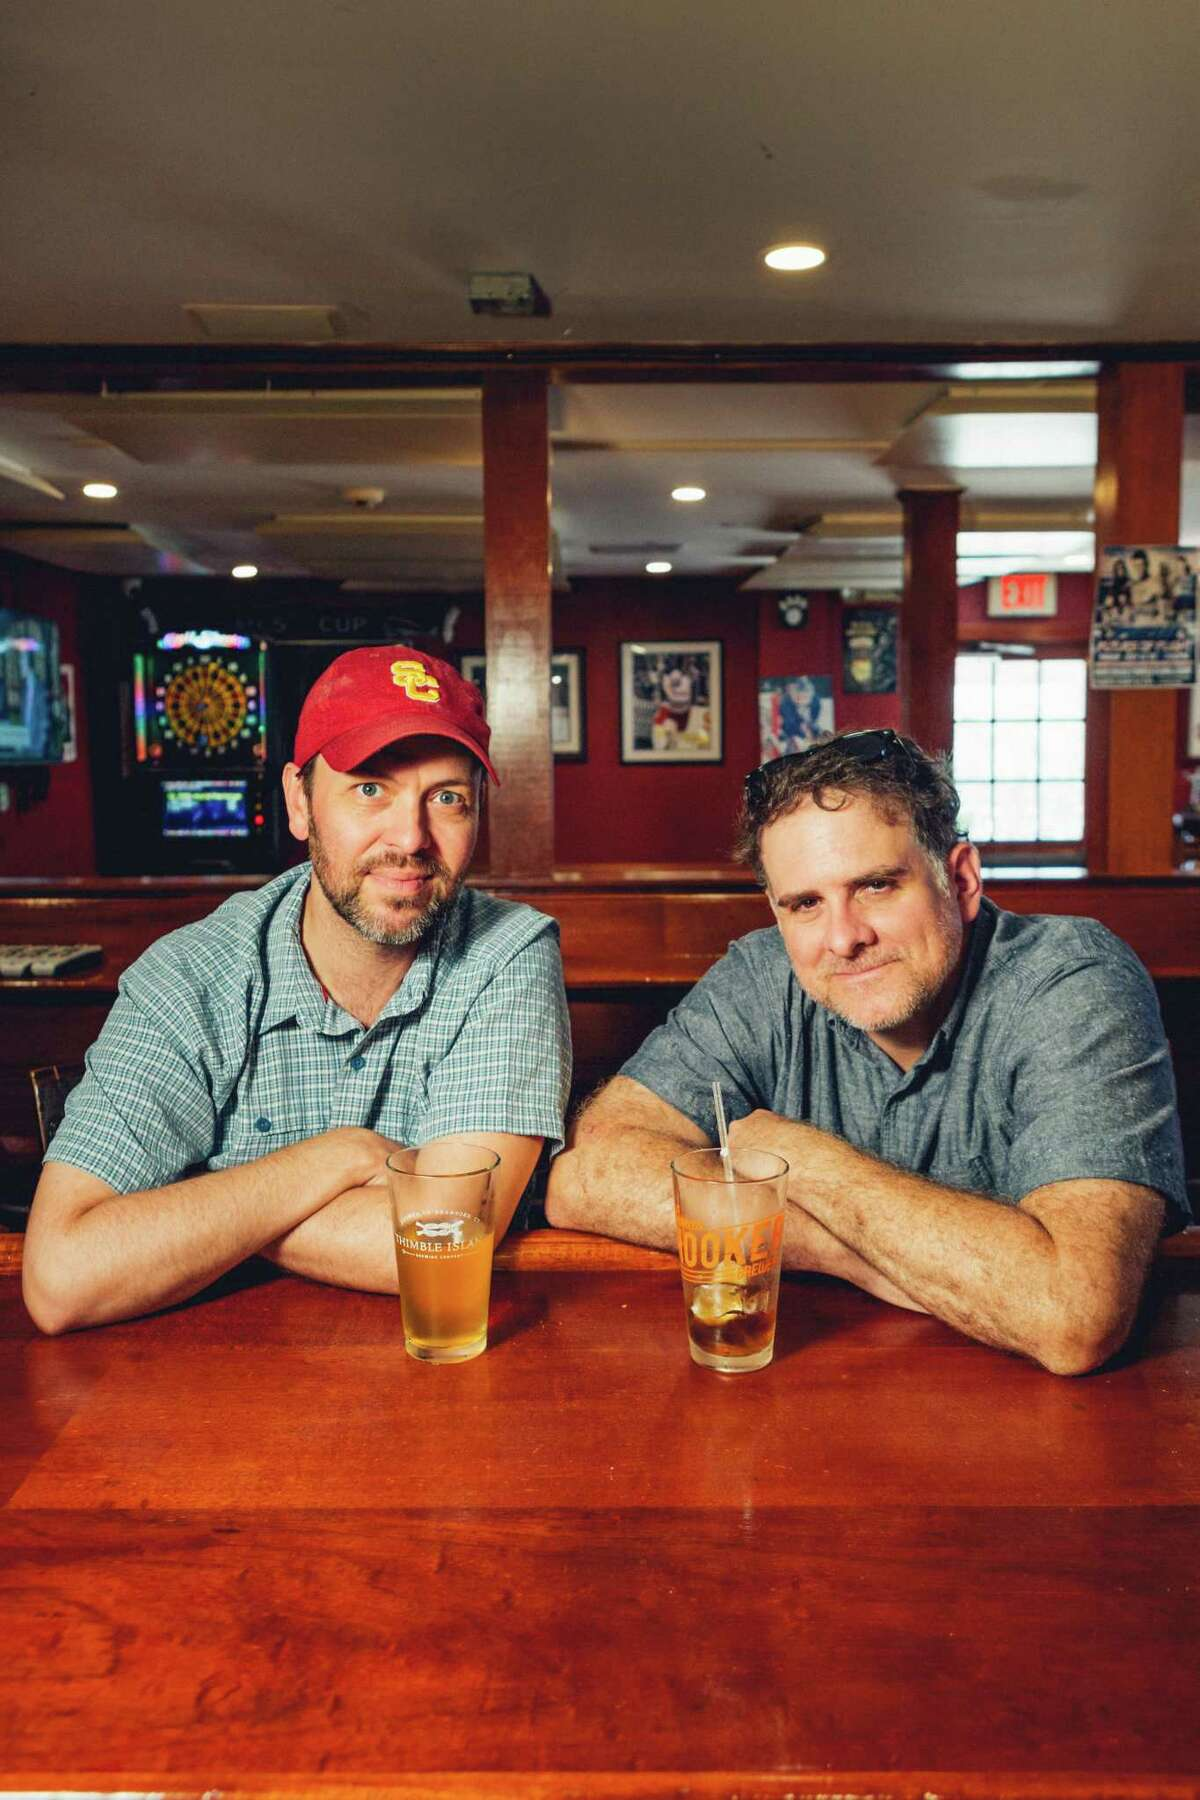 Thrown Stone Theater Company co-artistic directors from left to right Jonathon Winn and Jason Peck drinking a cold beer at Tiger's Den of Ridgefield, CT.